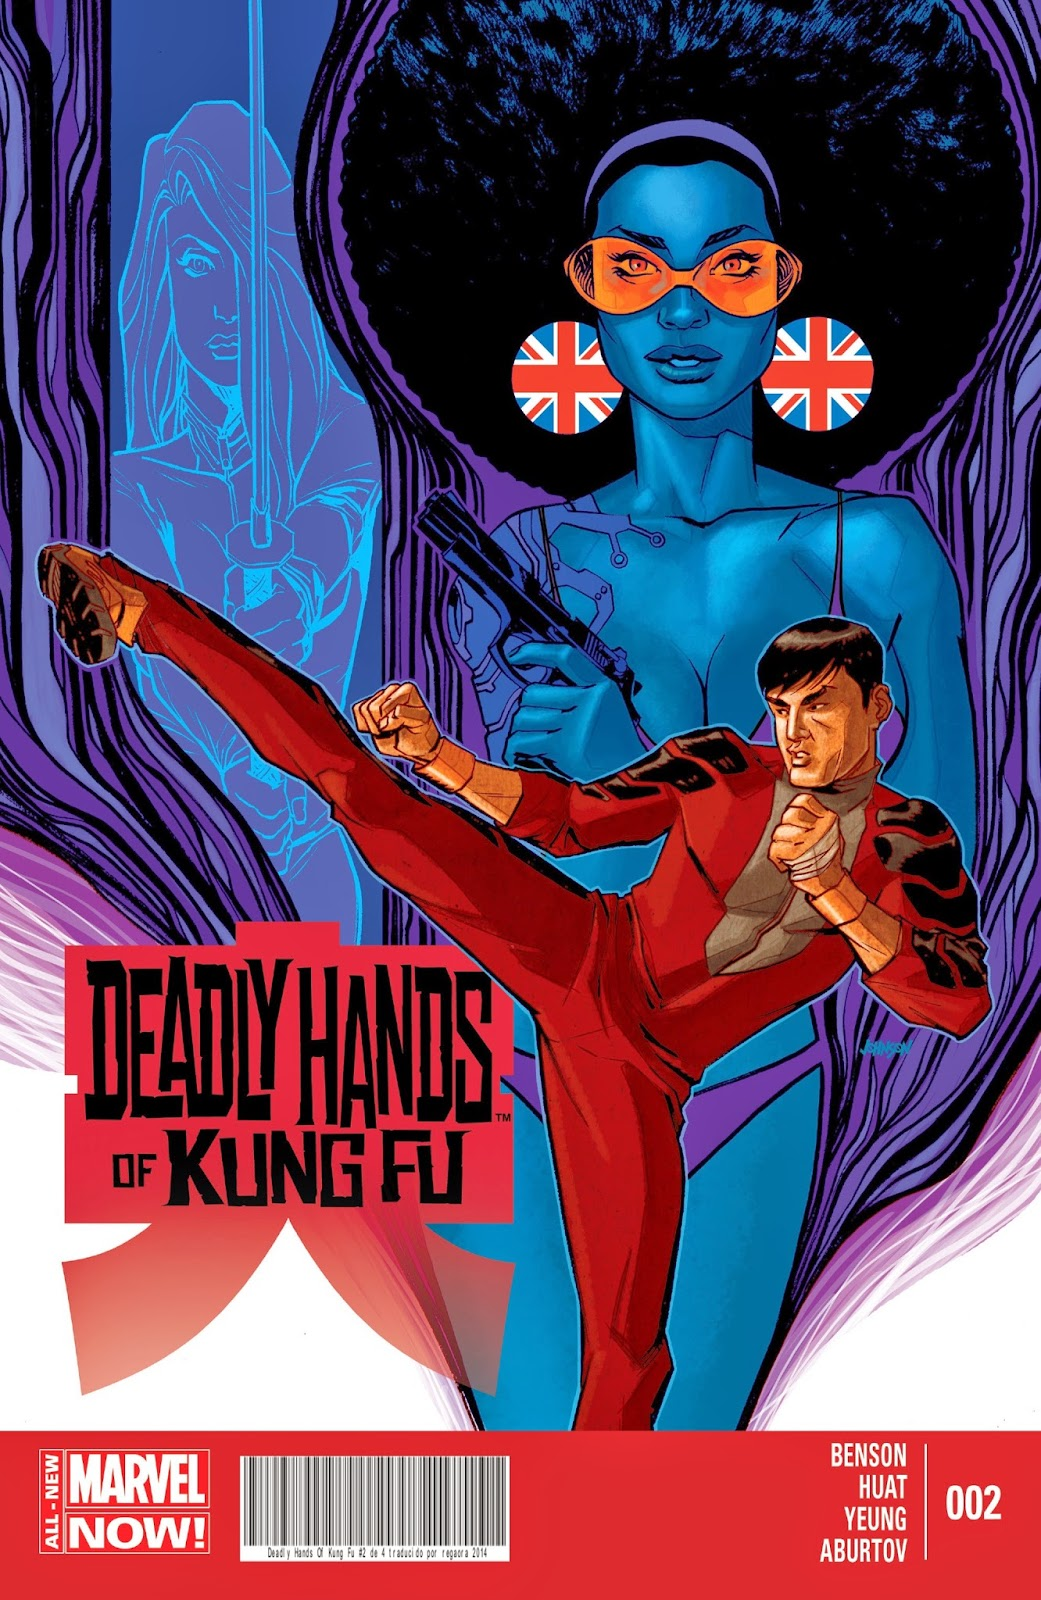 Portada de The Deadly Hands of Kung Fu 2014 miniserie 02